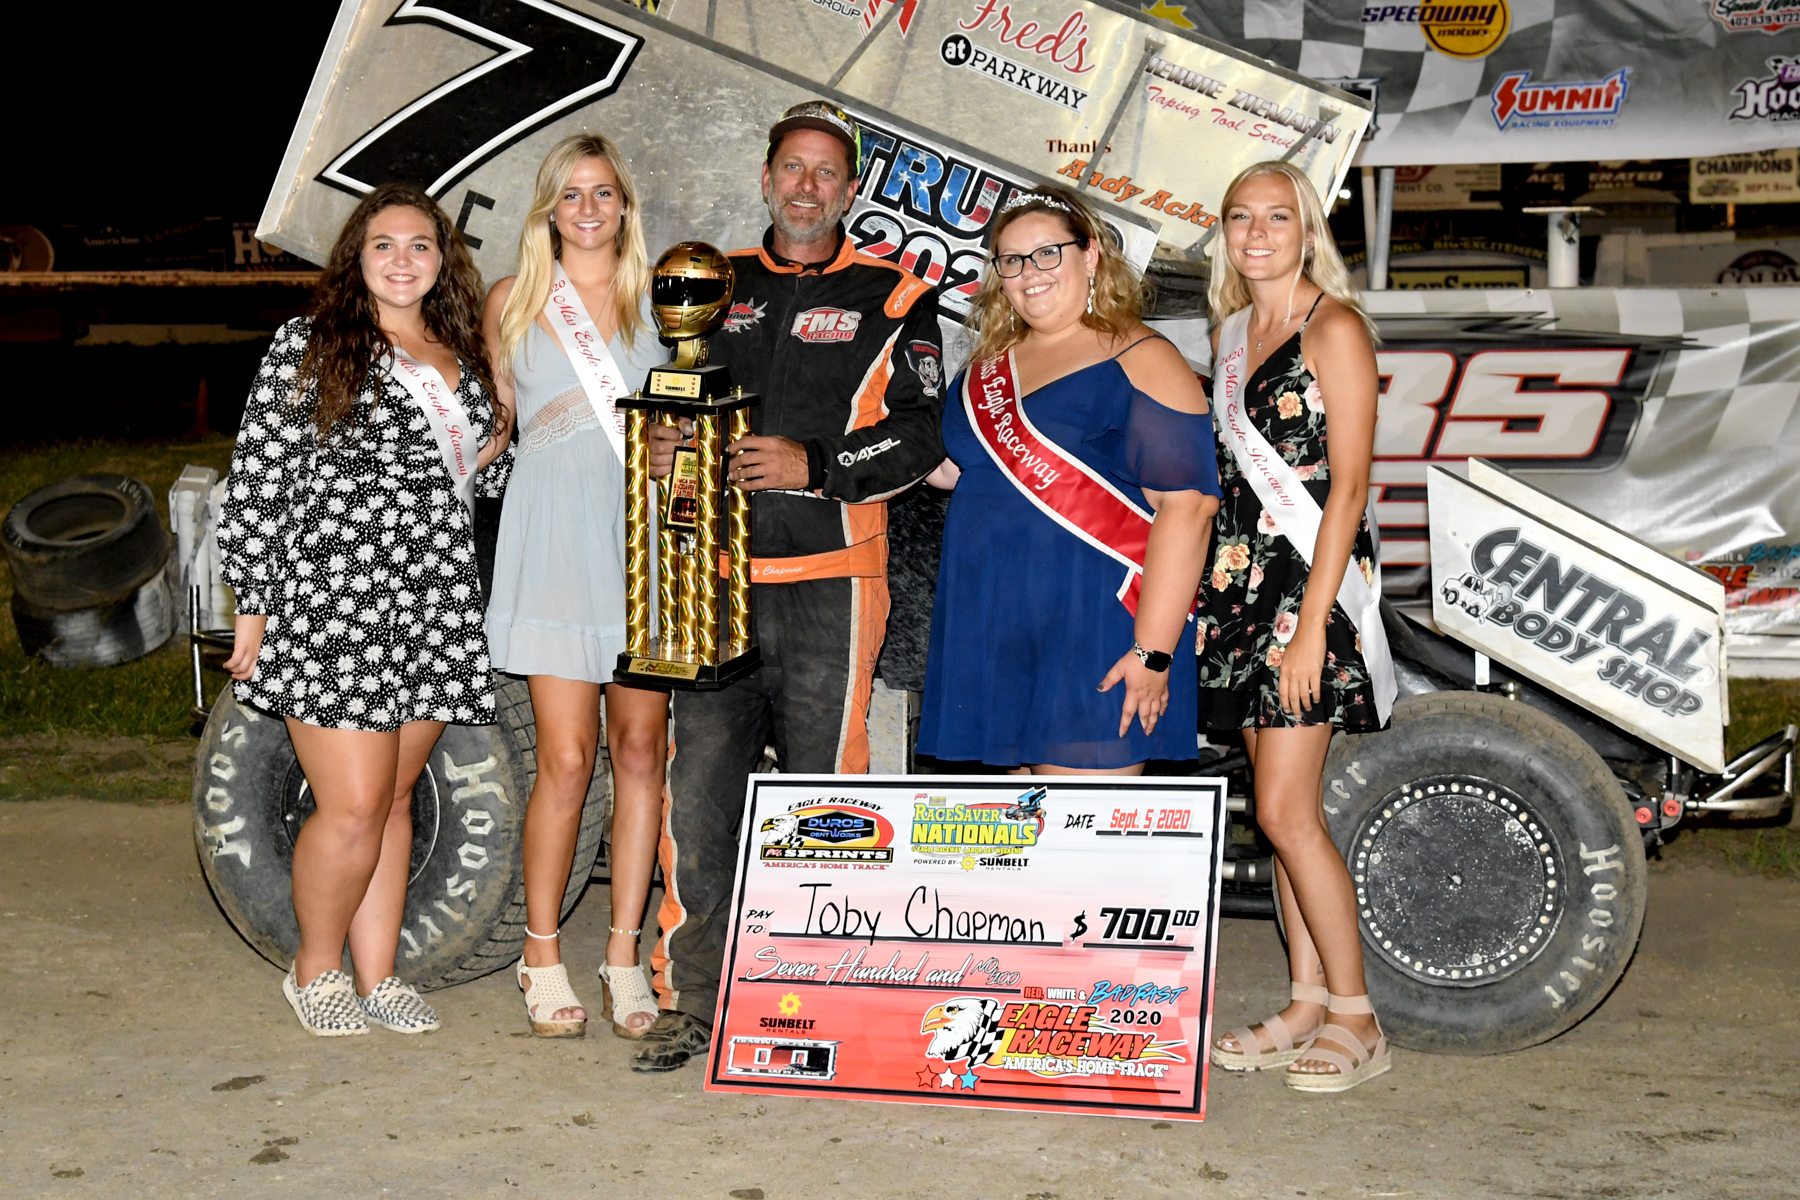 Toby Chapman claims victory at Night 2 of IMCA RaceSaver Nationals Qualifying